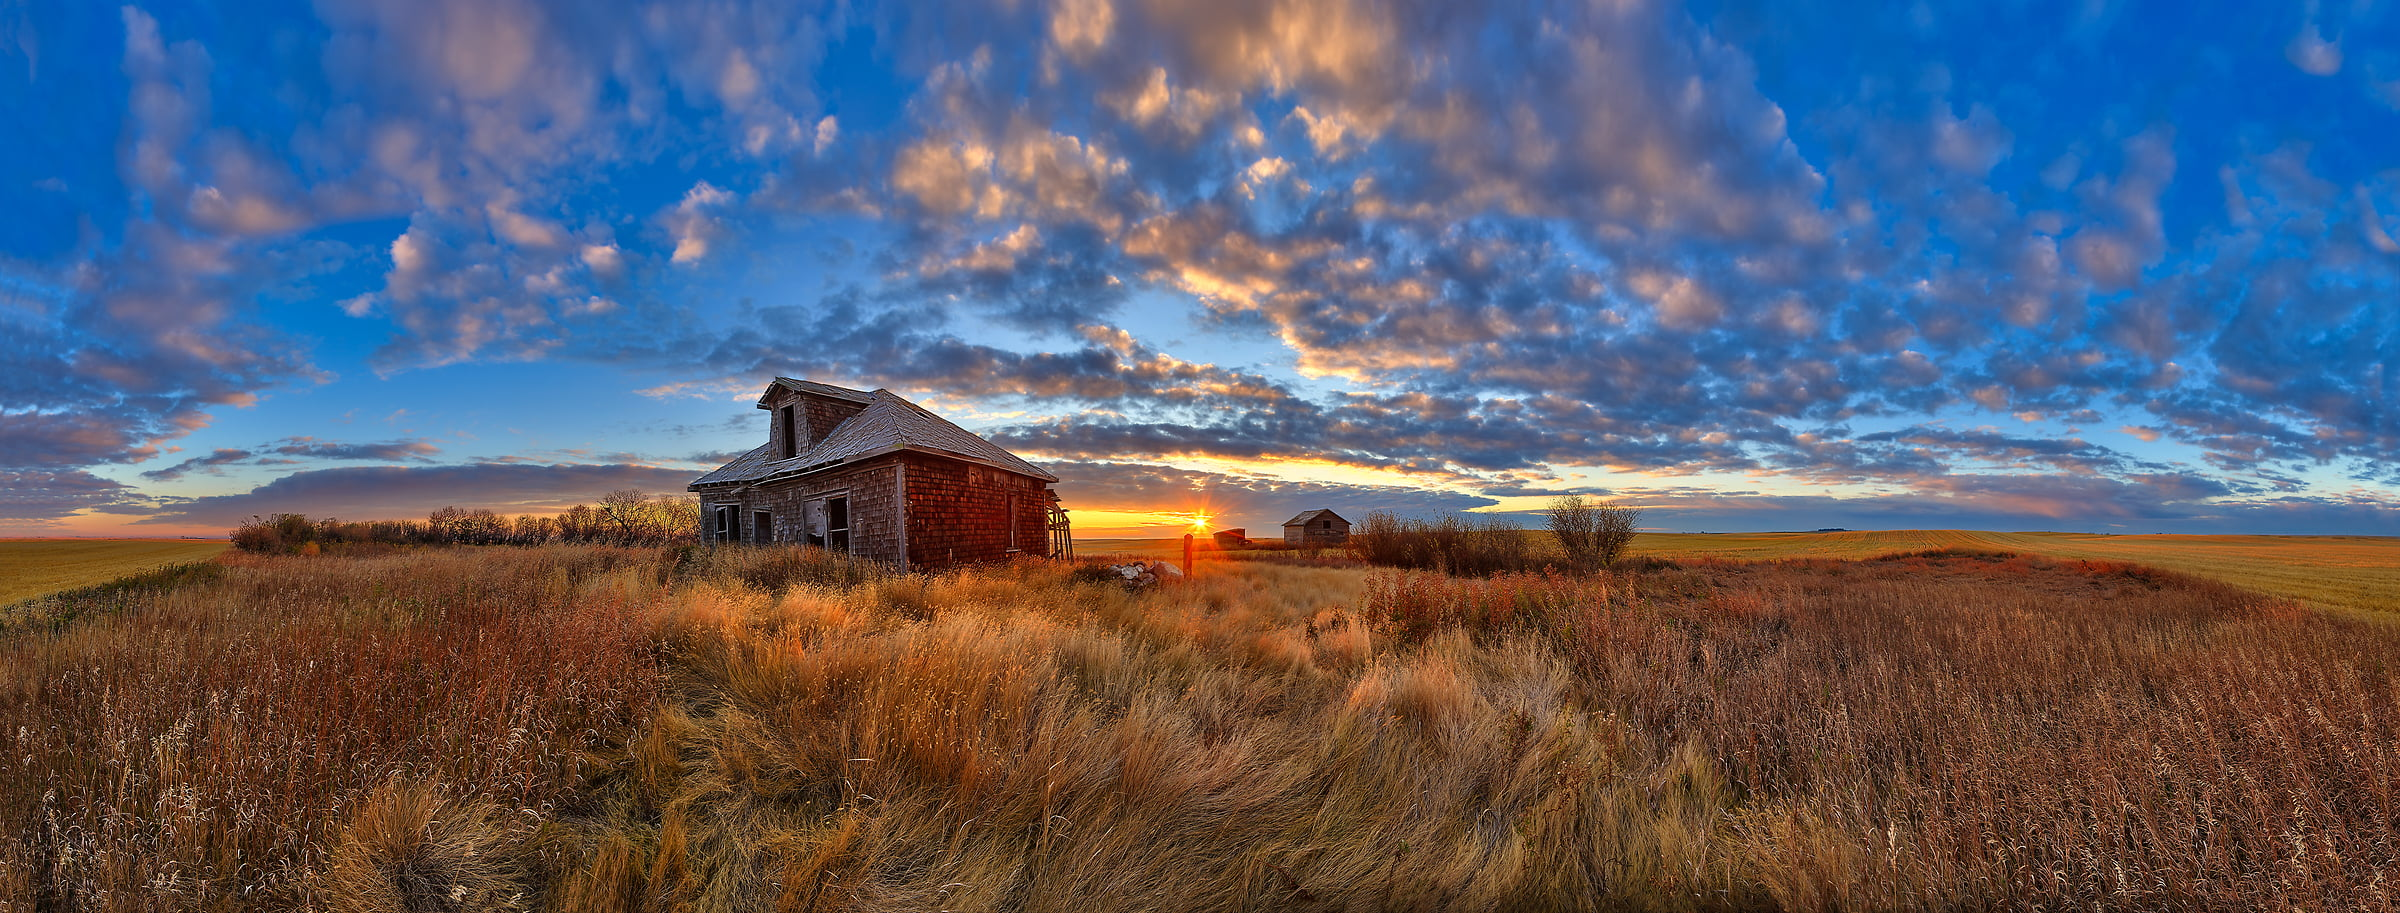 137 megapixels! A very high resolution, large-format VAST photo of farmland, grasslands, the prairie, and an old abandoned house; fine art landscape photo created at sunset by Scott Dimond on the Great Plains in Alberta, Canada